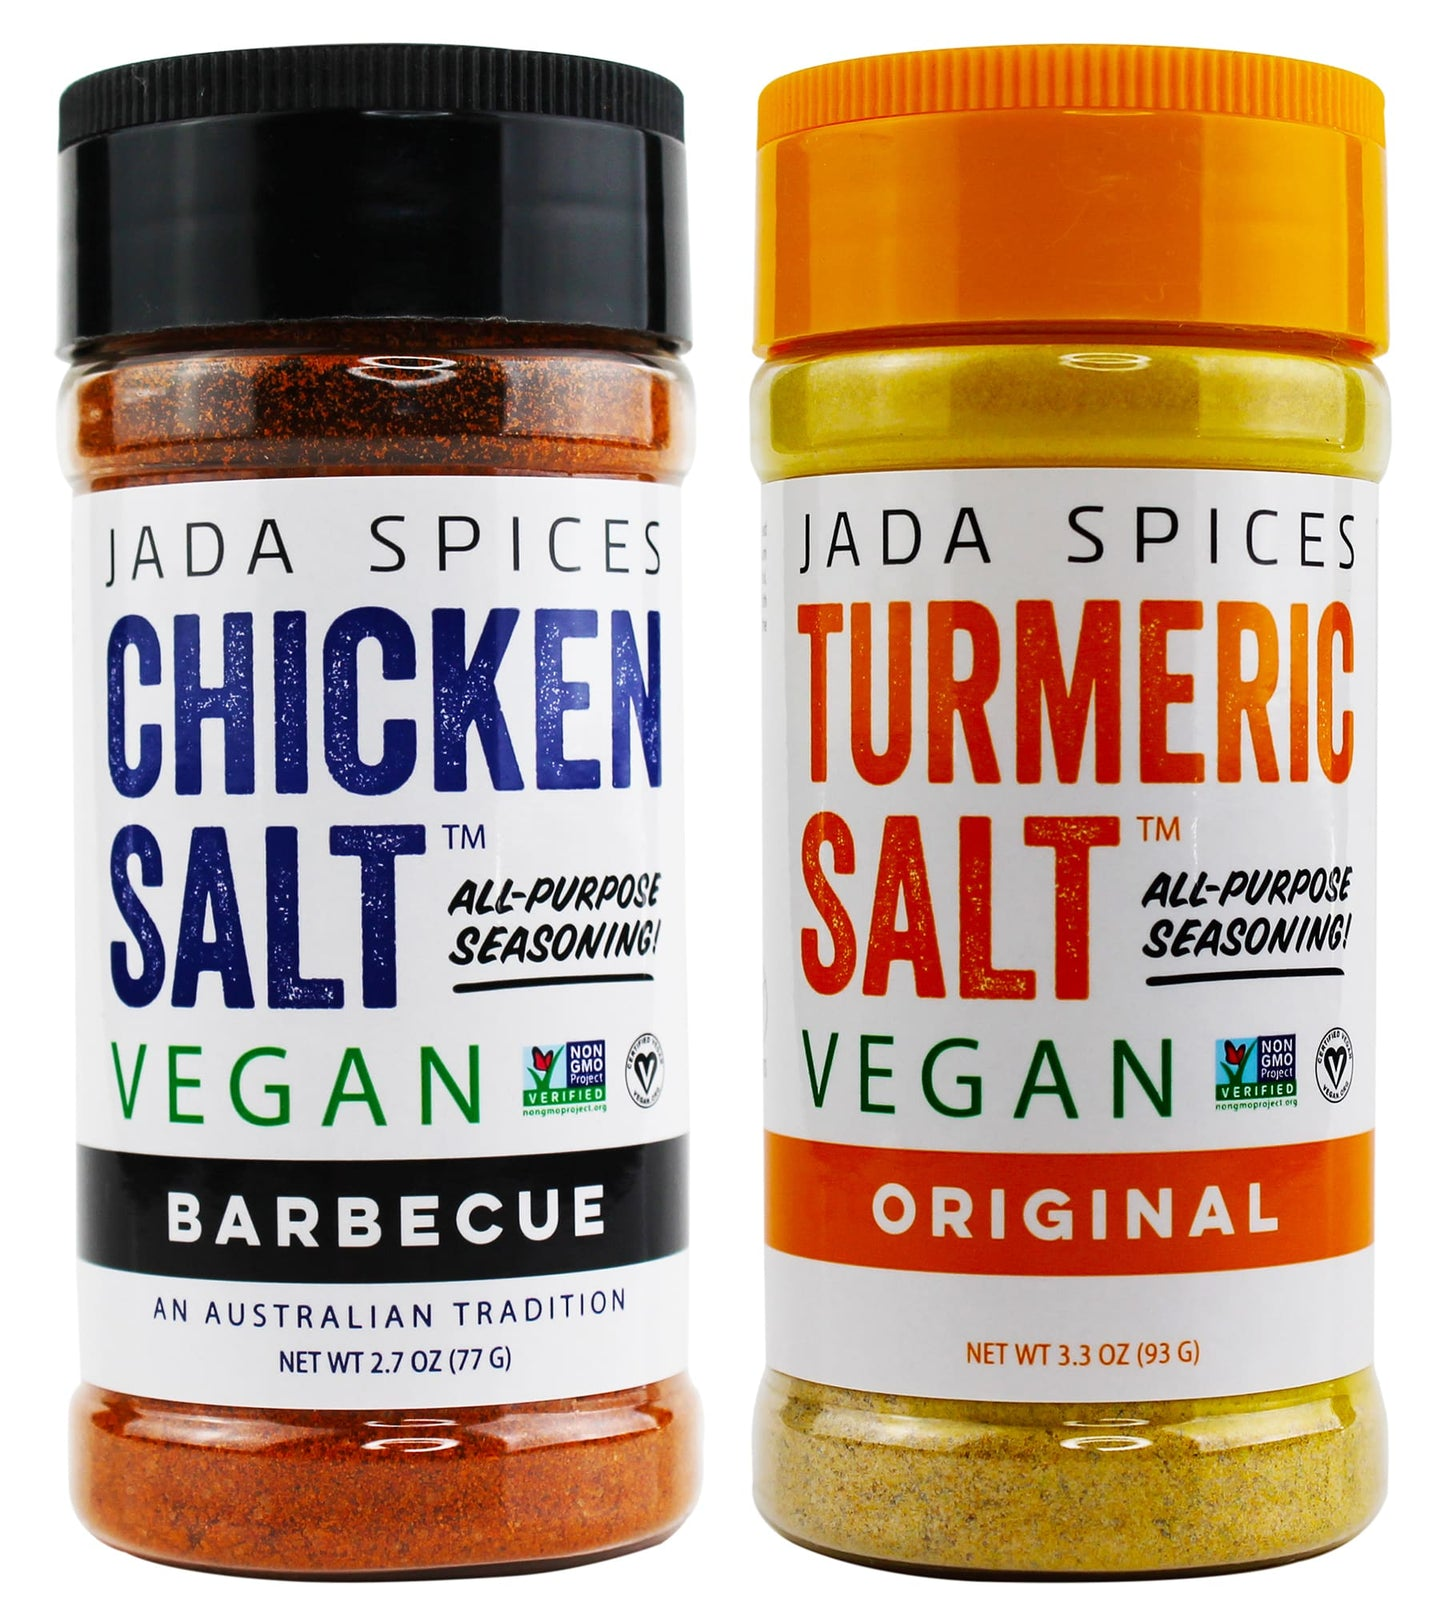 turmeric salt and barbecue vegan and vegetarian all-purpose seasoning flavors